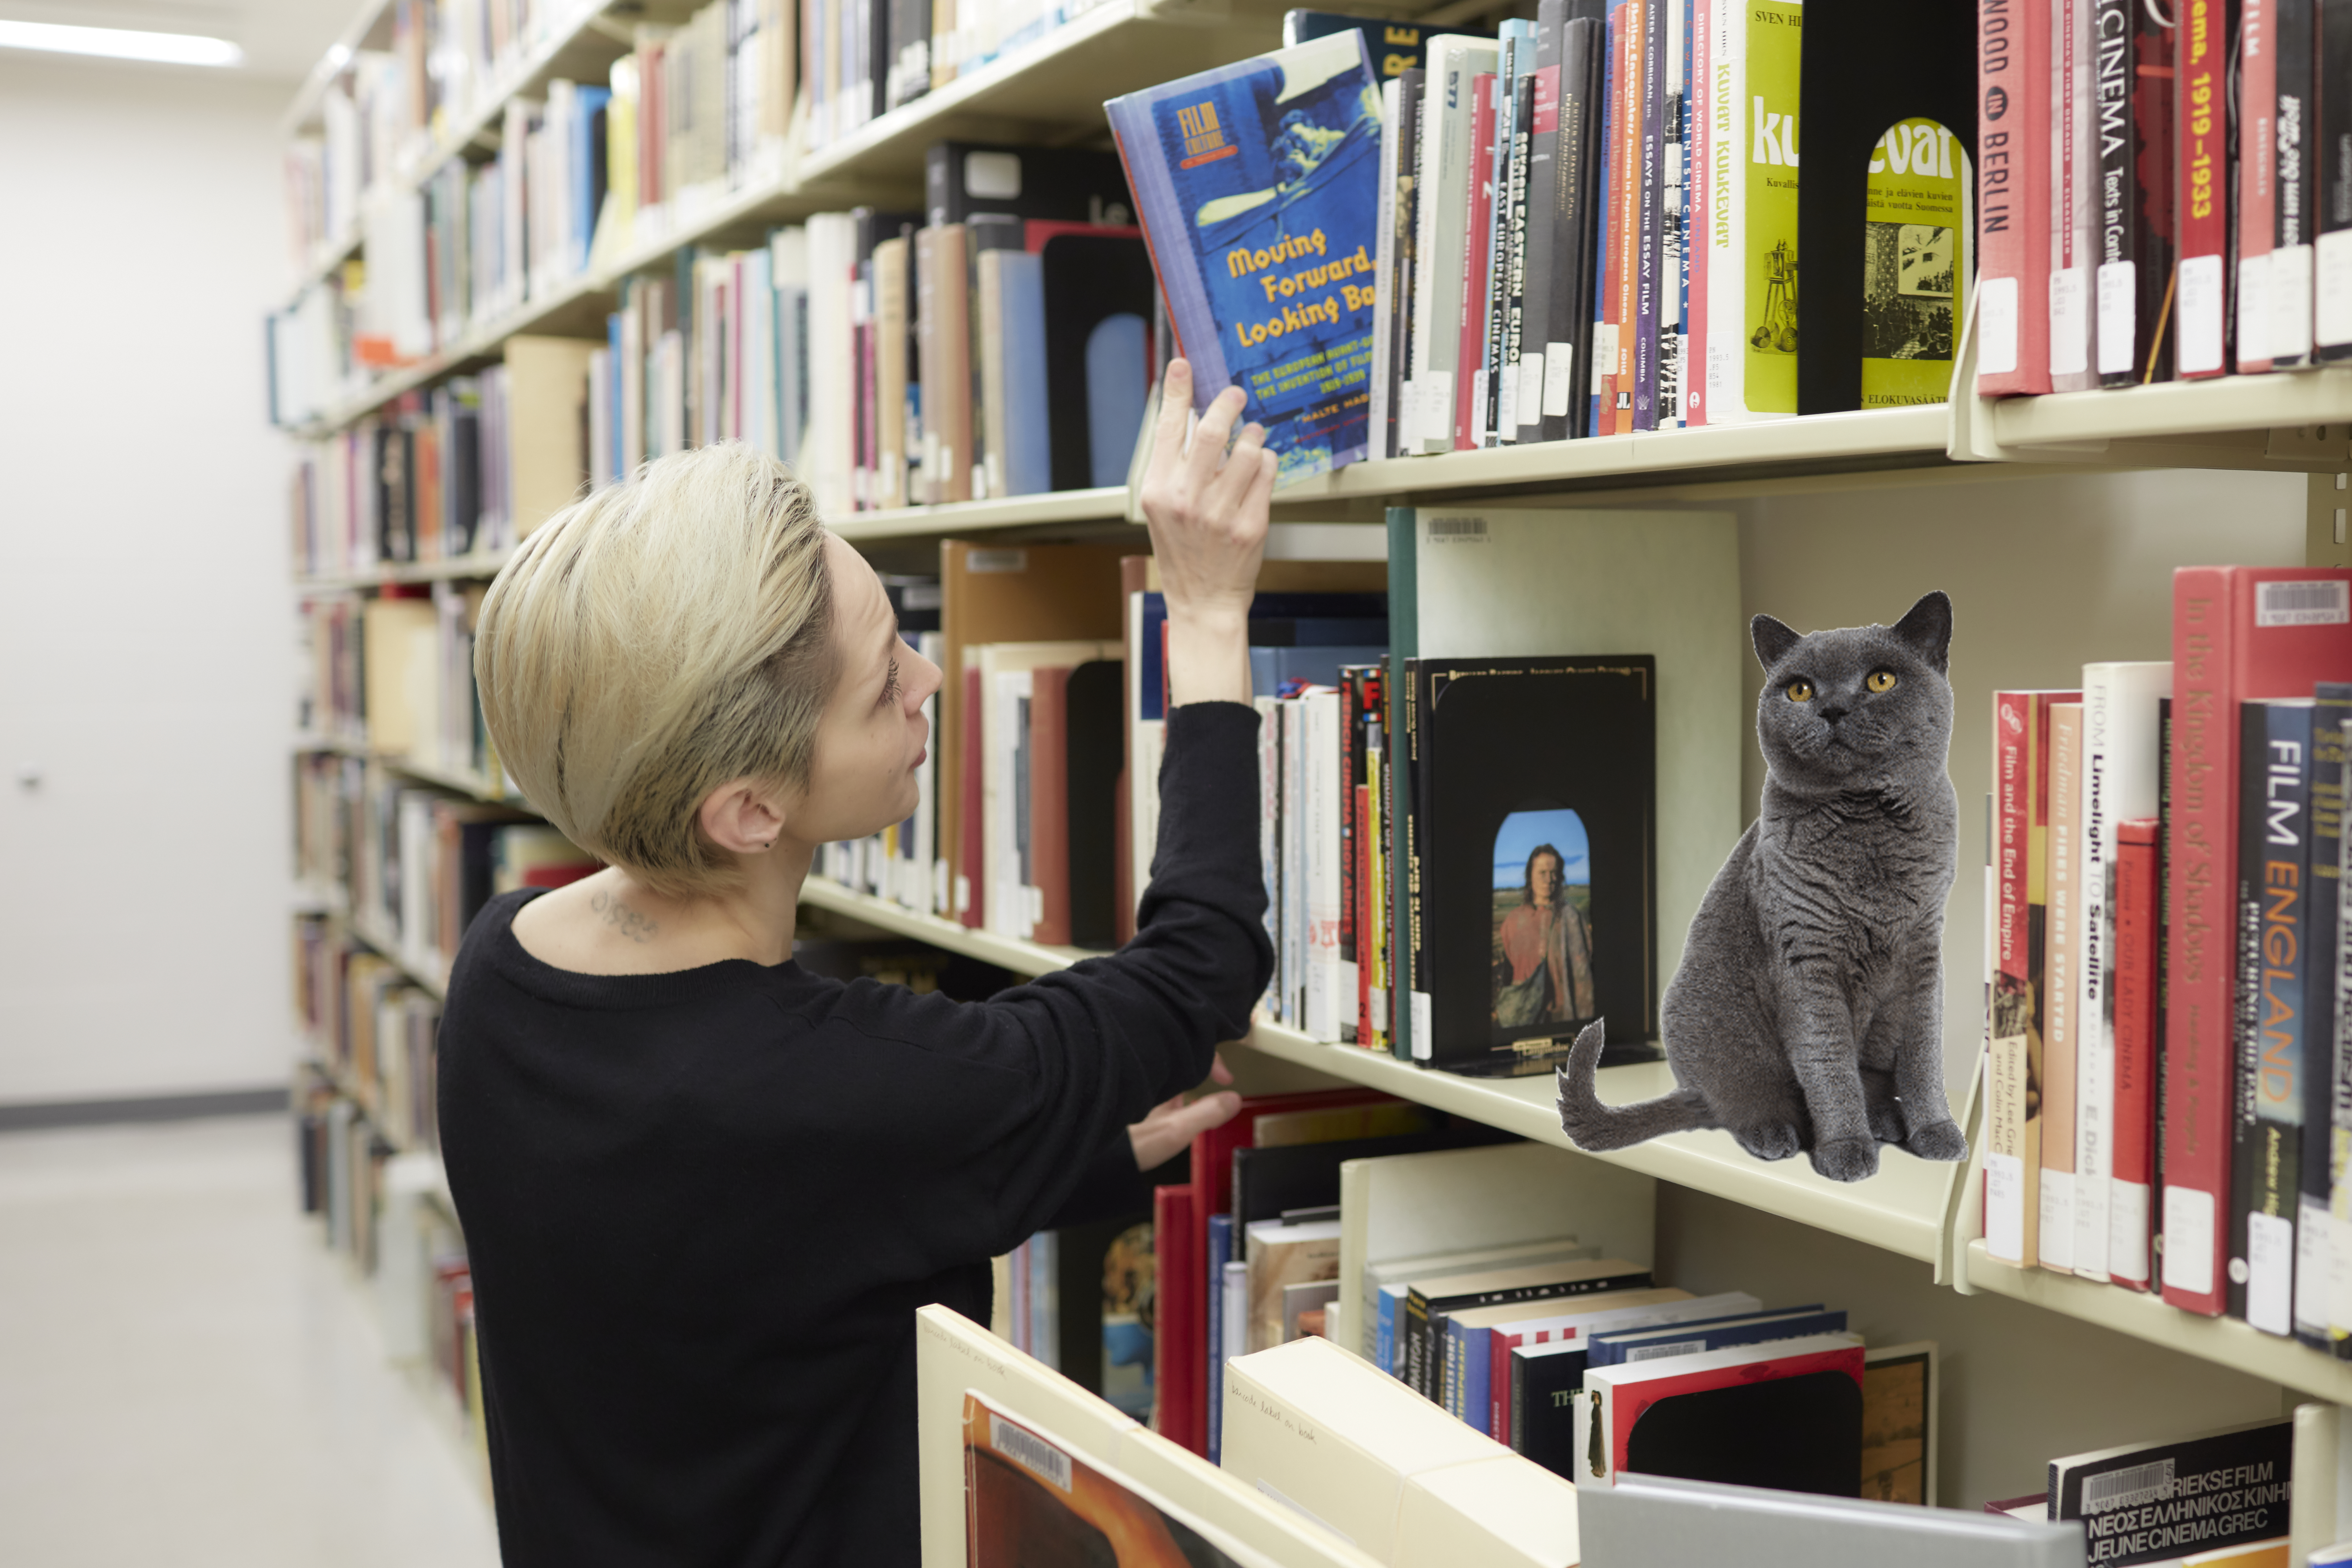 Badly photoshopped cat in the library